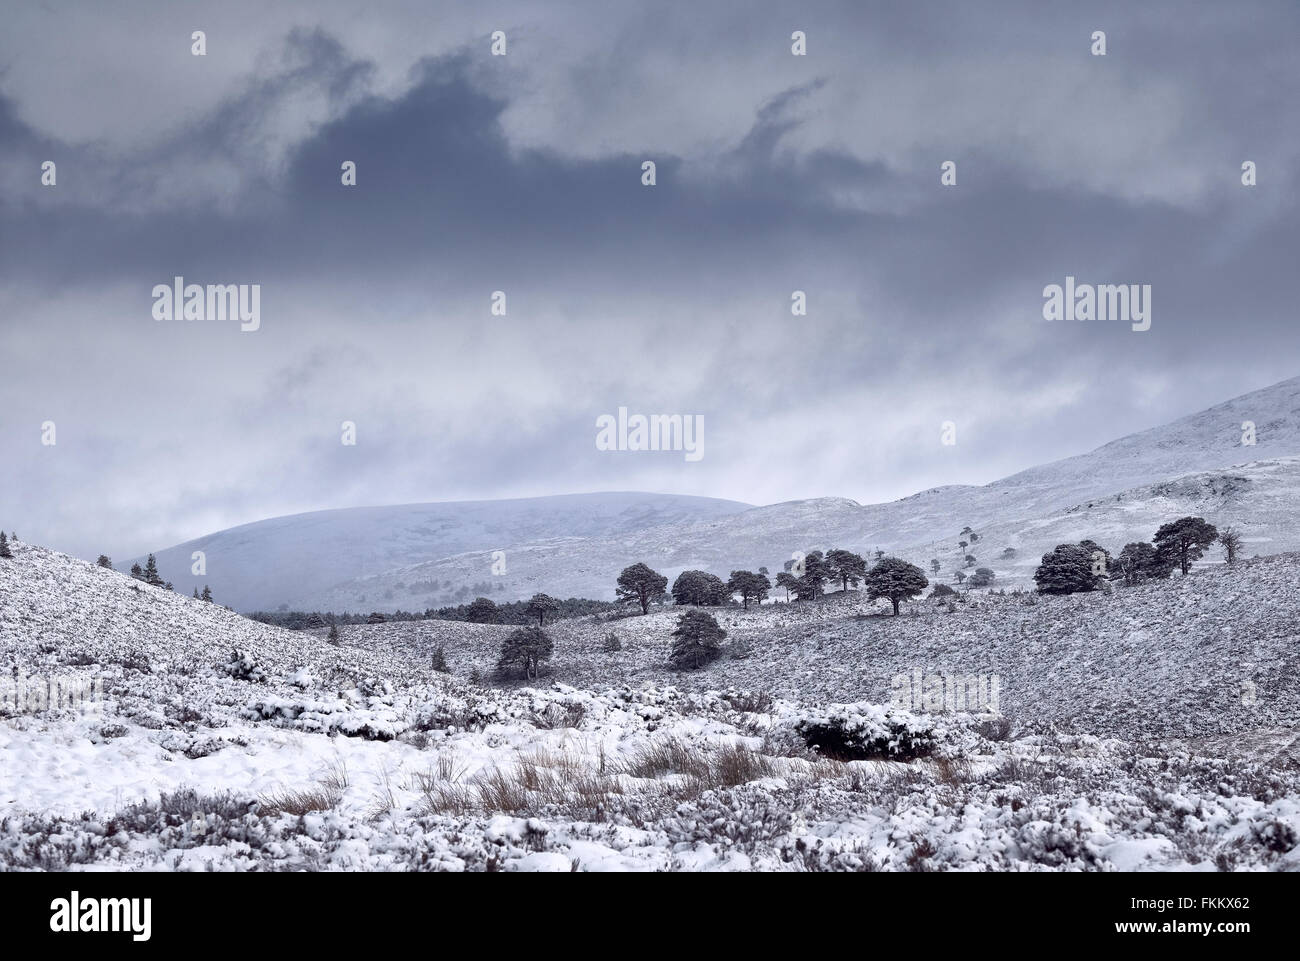 Storm clouds over snow covered Glenmore Forest Park, Cairngorms in the Scottish Highlands, UK. - Stock Image